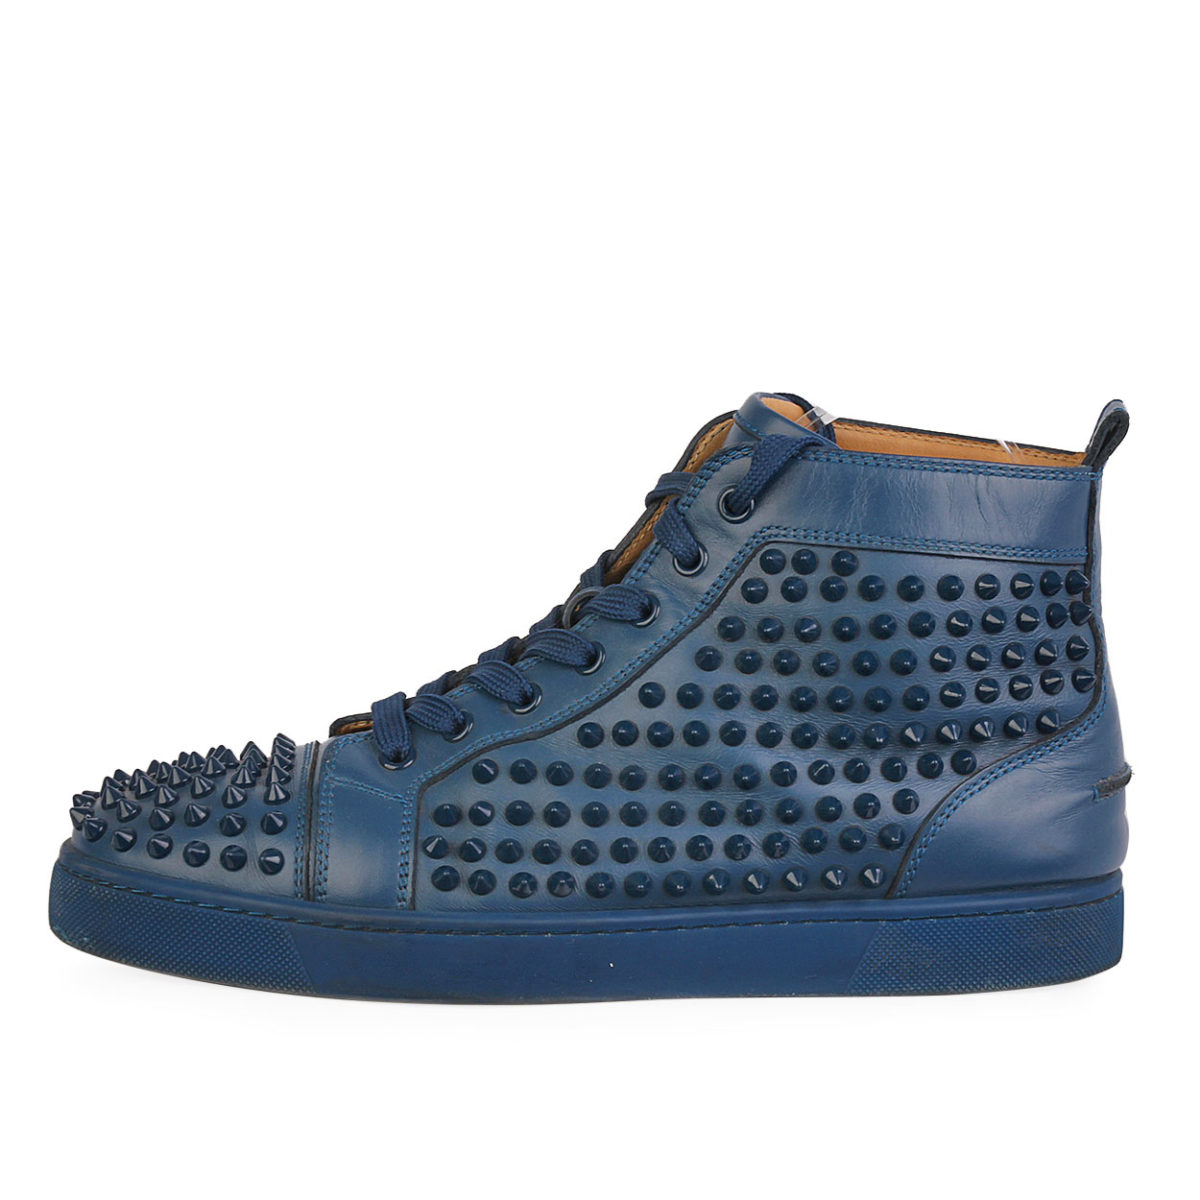 buy popular 9bbf7 d38df CHRISTIAN LOUBOUTIN Leather Louis High Top Spike Sneakers Blue S: 41 (7.5)